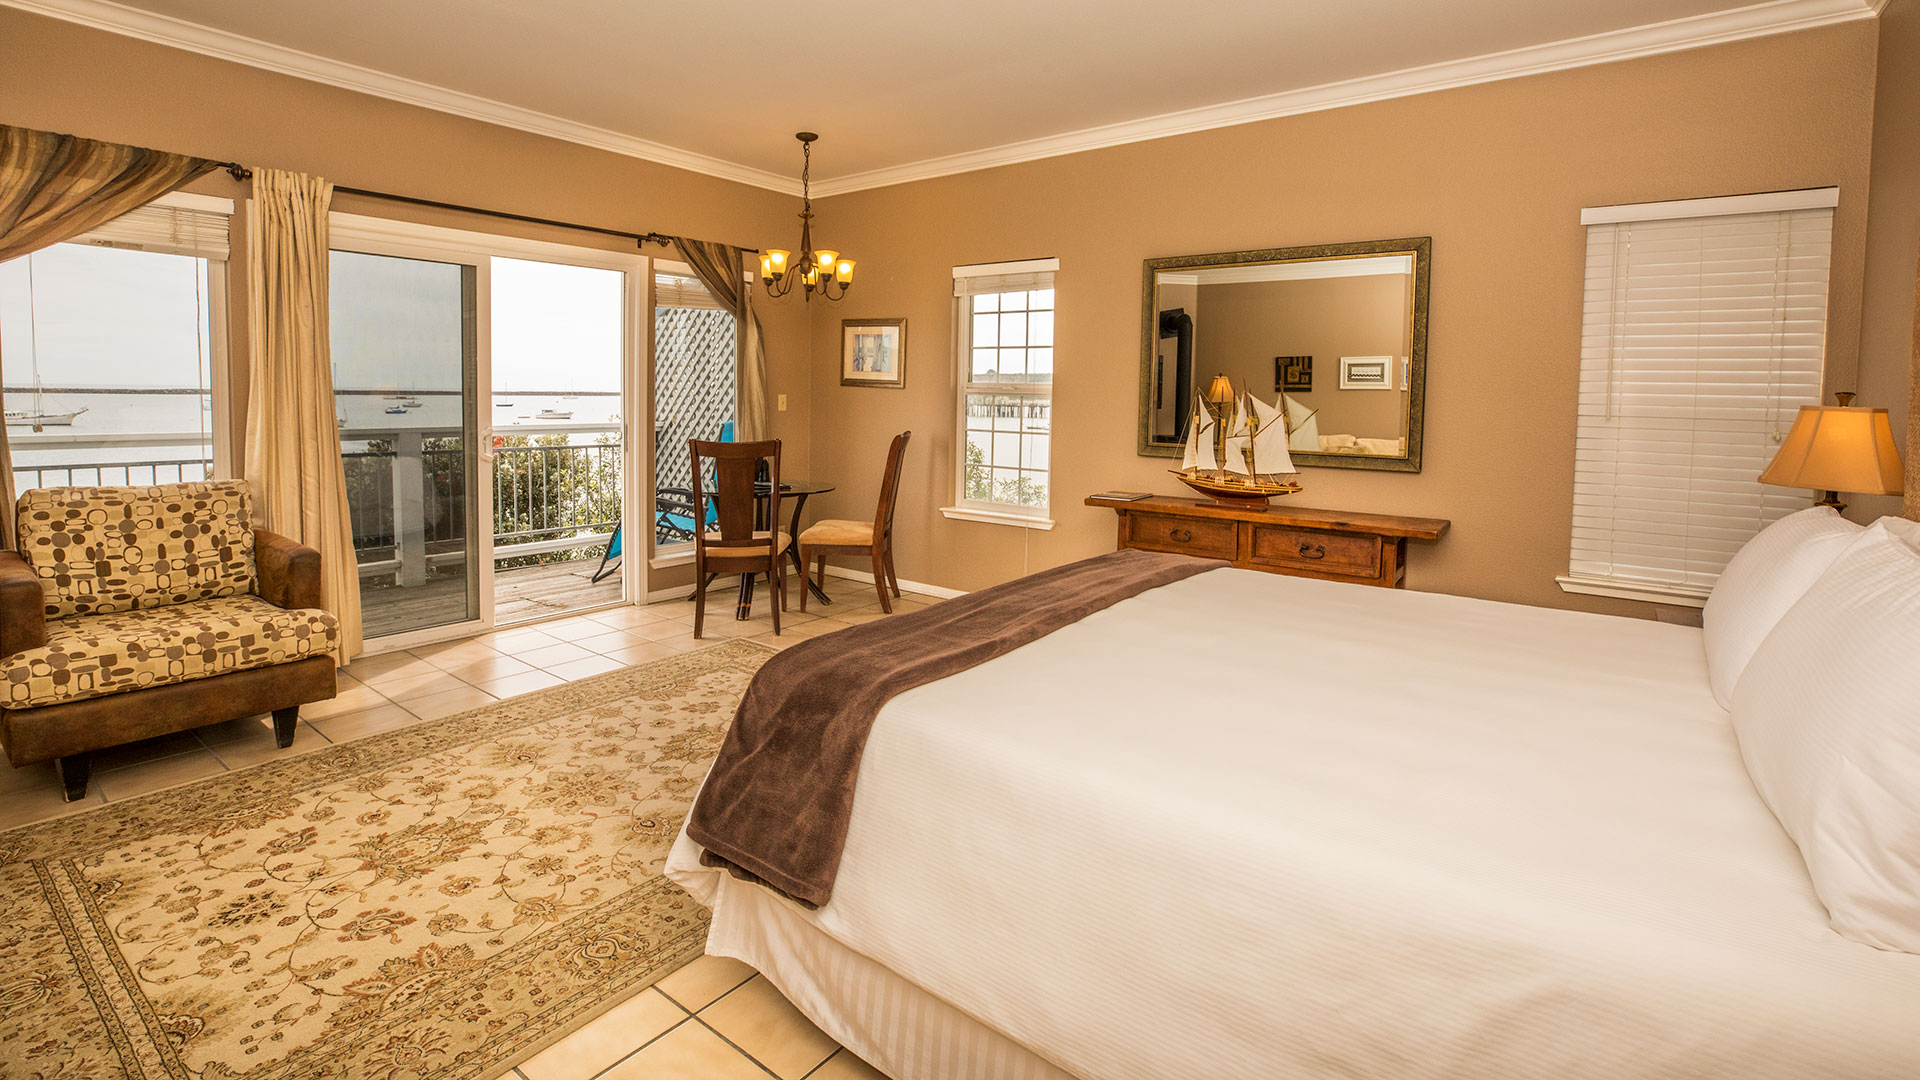 Montara Room With King Bed, Sofa Chair, And Dining Table